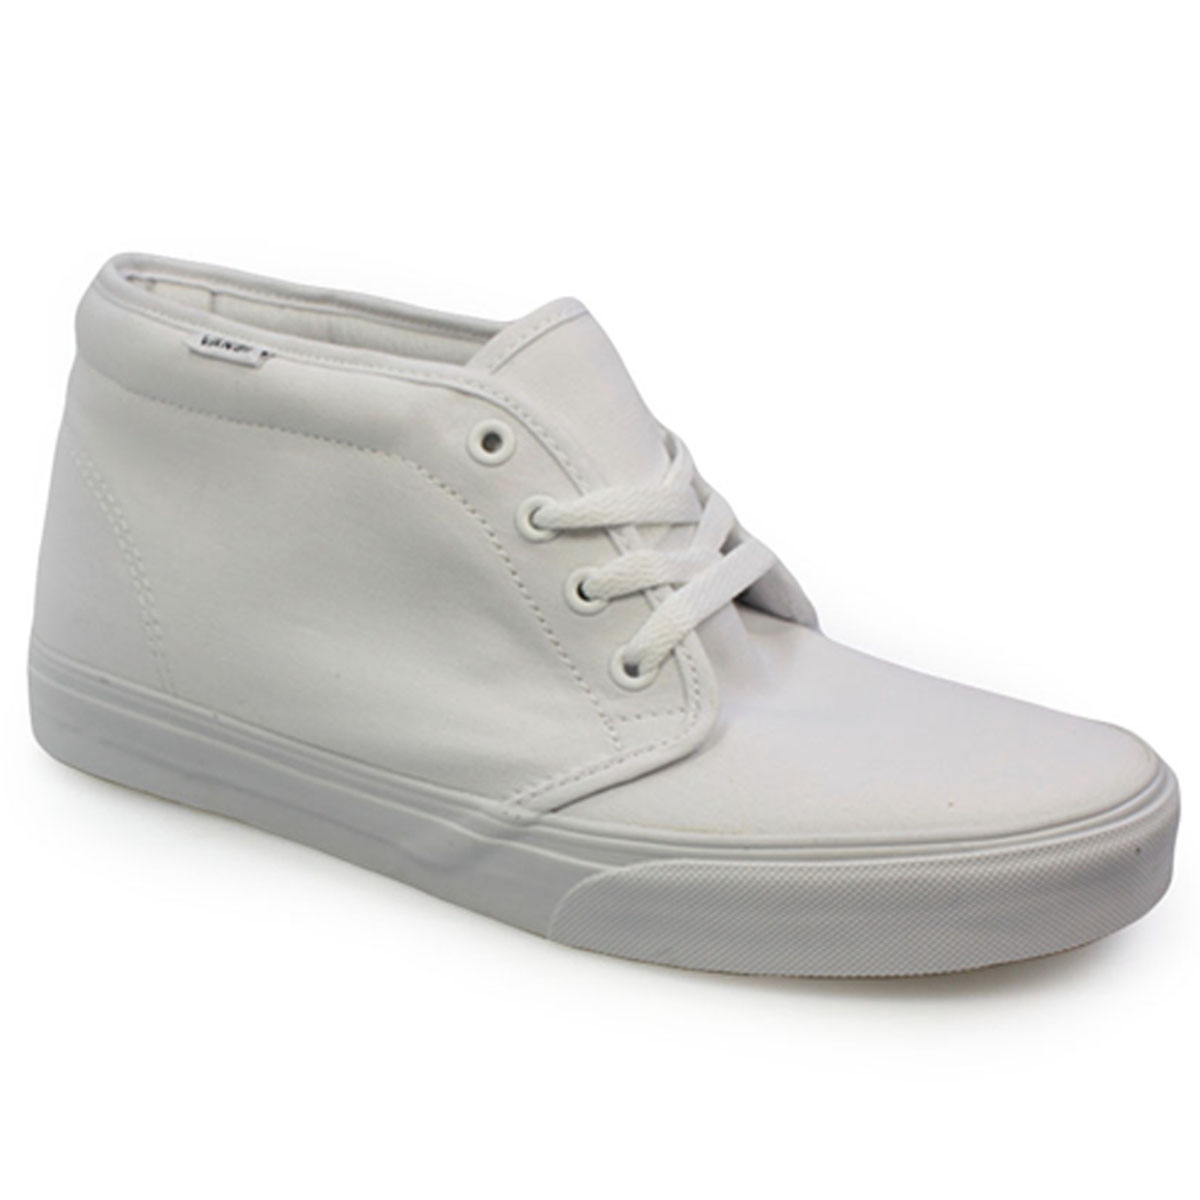 Vans Chukka Boot Mens Womens White High Top Canvas Trainers Shoes ...